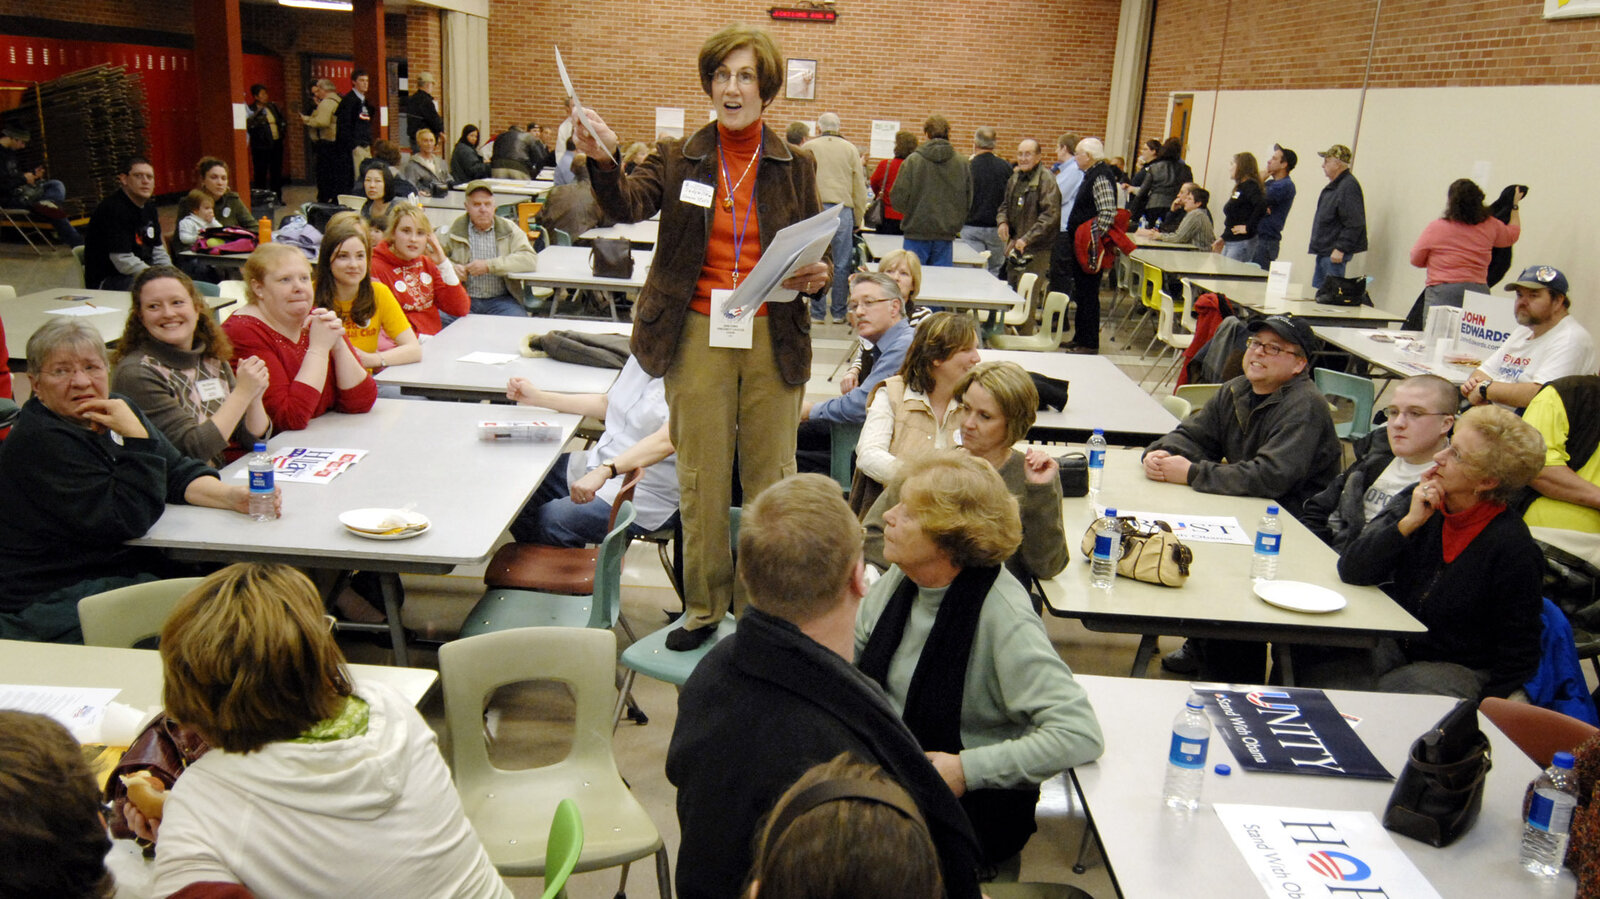 Precinct Chairwoman Judy Wittkop explains the rules during a 2008 Democratic caucus in Le Mars, Iowa.